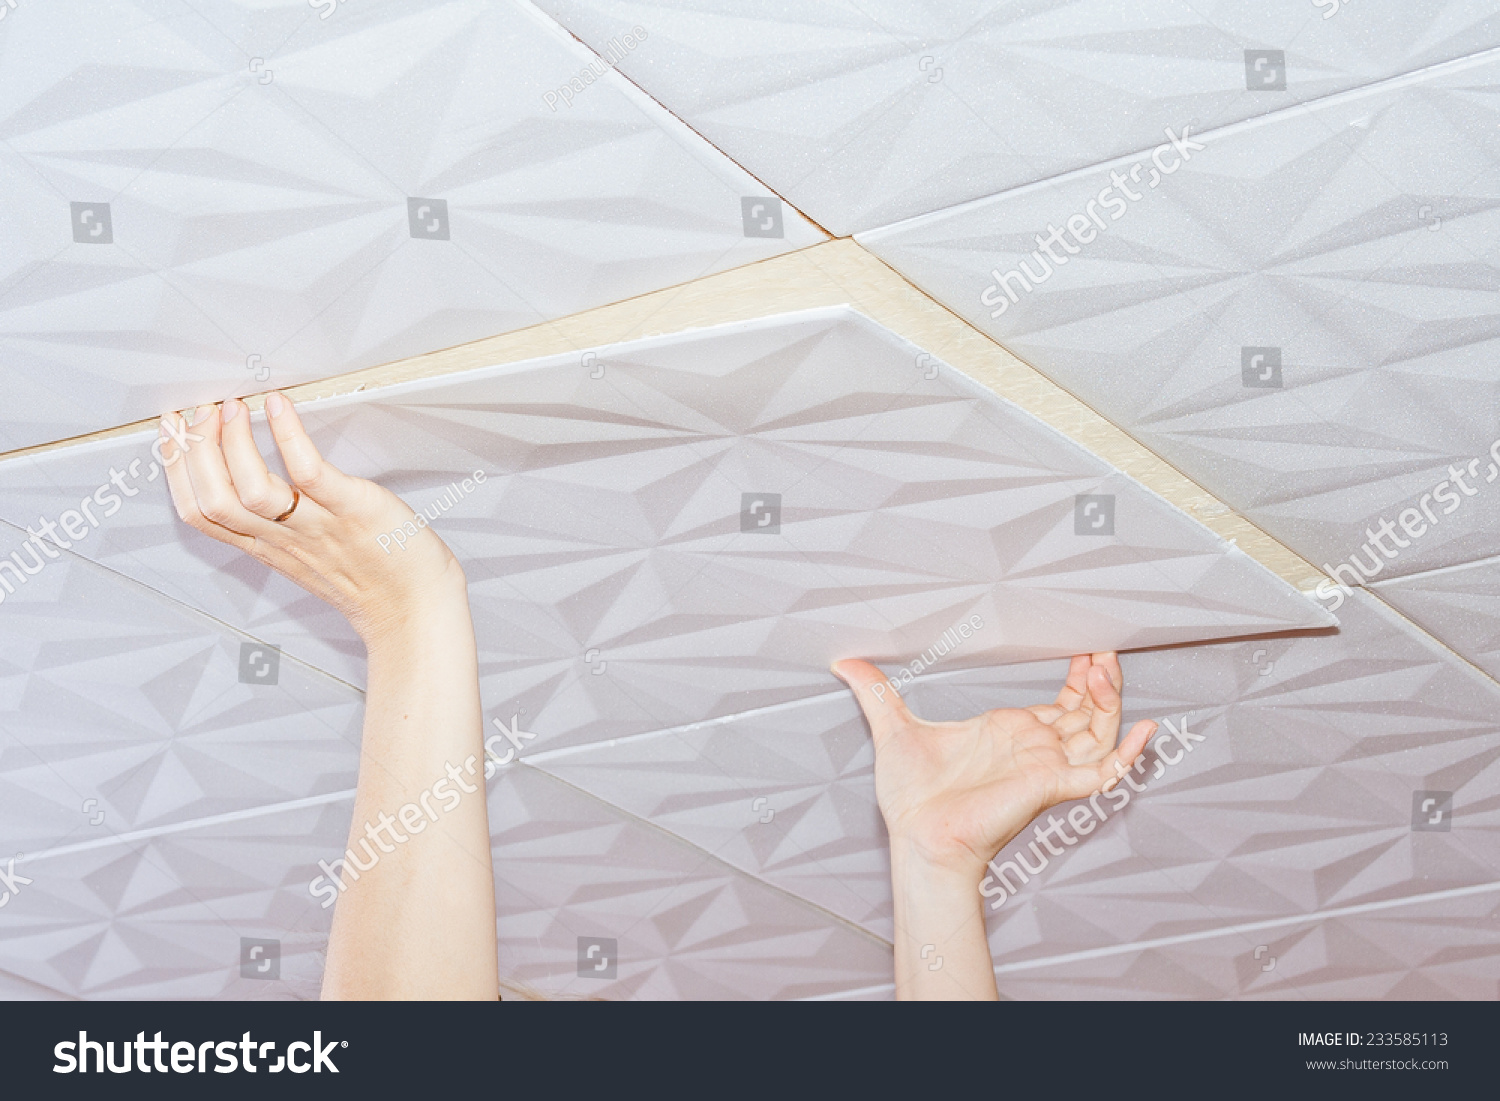 What are ceiling tiles made of gallery tile flooring design ideas ceiling tiles made of gallery tile flooring design ideas ceiling tiles made of gallery tile flooring dailygadgetfo Choice Image